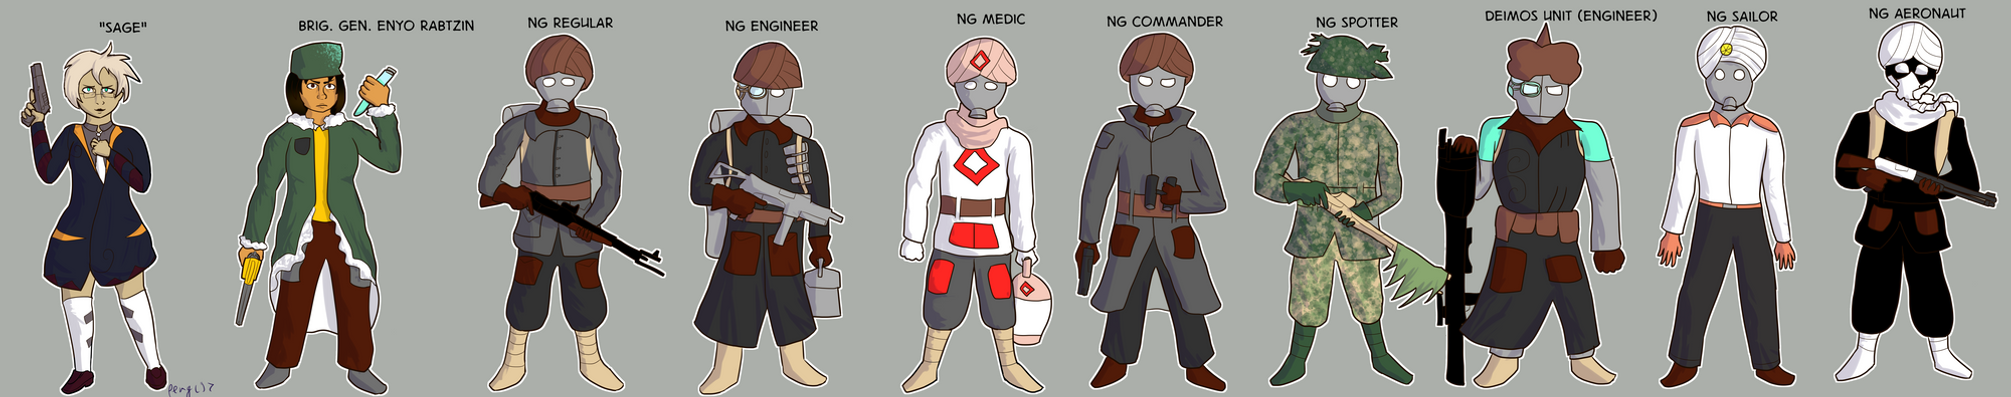 North Ghurrkan Characters and Infantry by penguinpyro